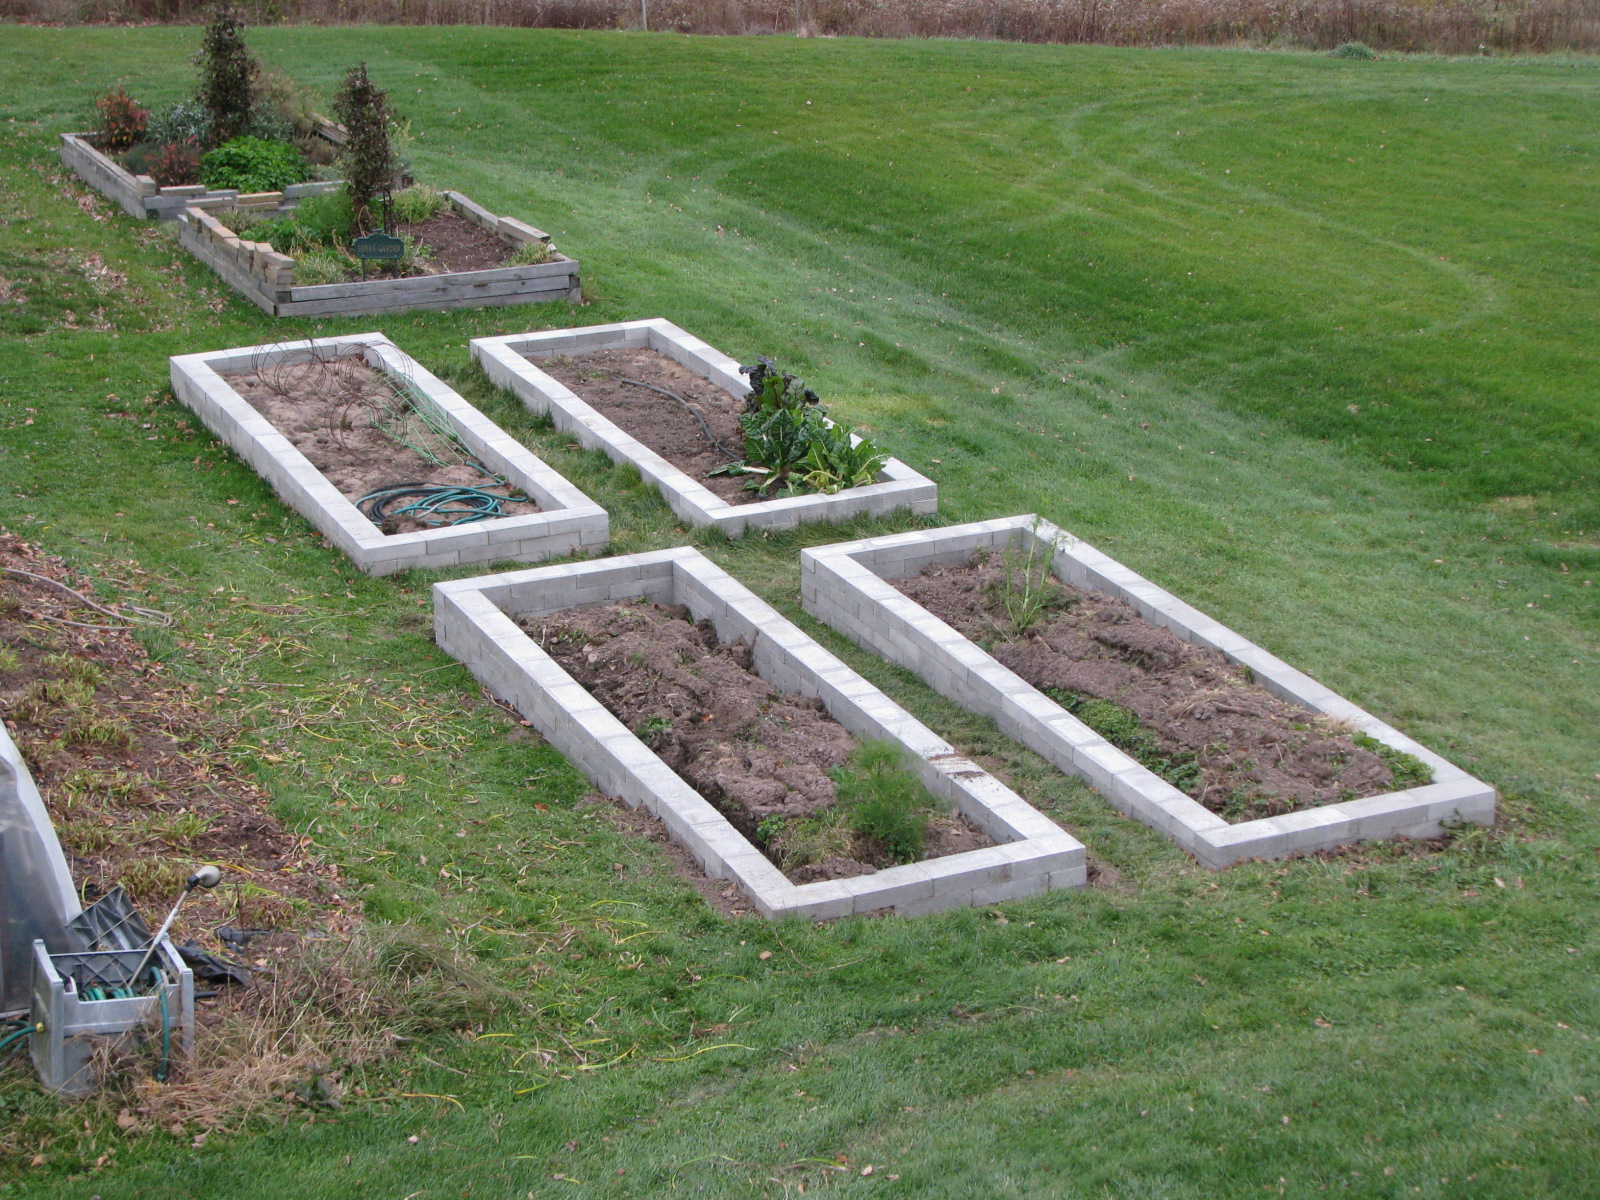 Garden greenhouse and raised beds 4 x 8 x 16 inch concrete cap block raised bed planters solutioingenieria Image collections